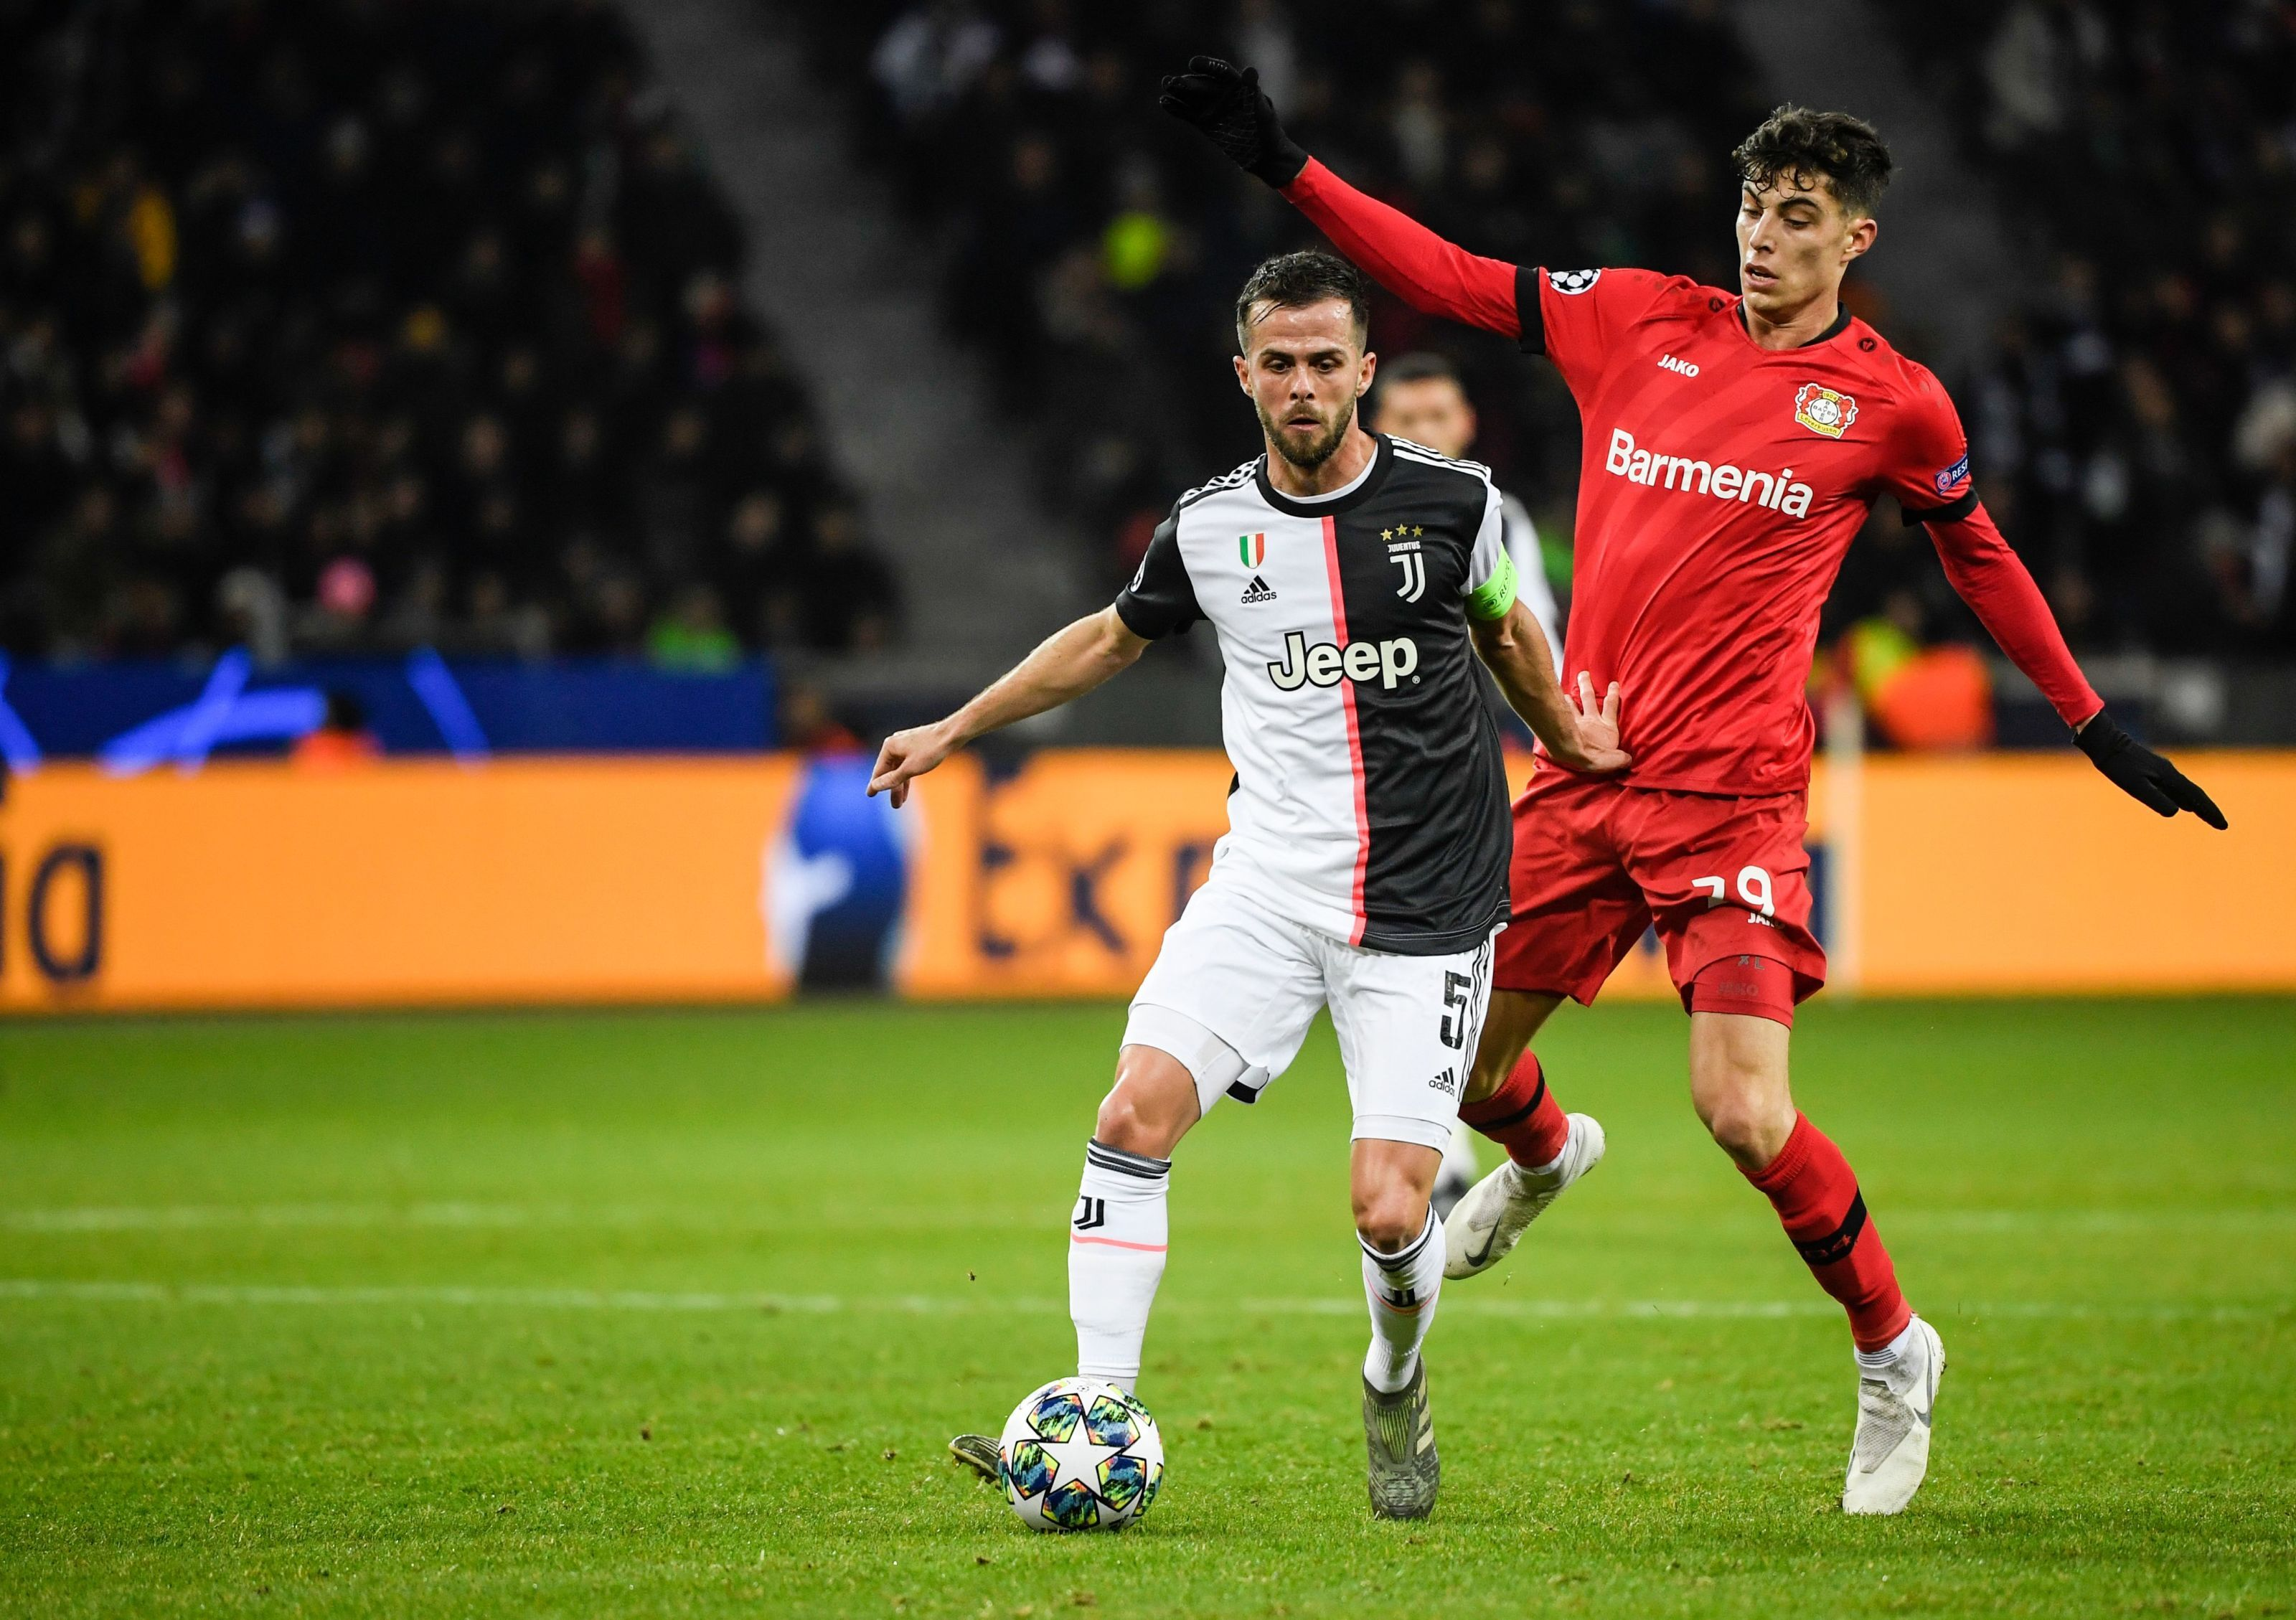 Liverpool: Five Reasons why Kai Havertz would be a masterful signing for Jurgen Klopp